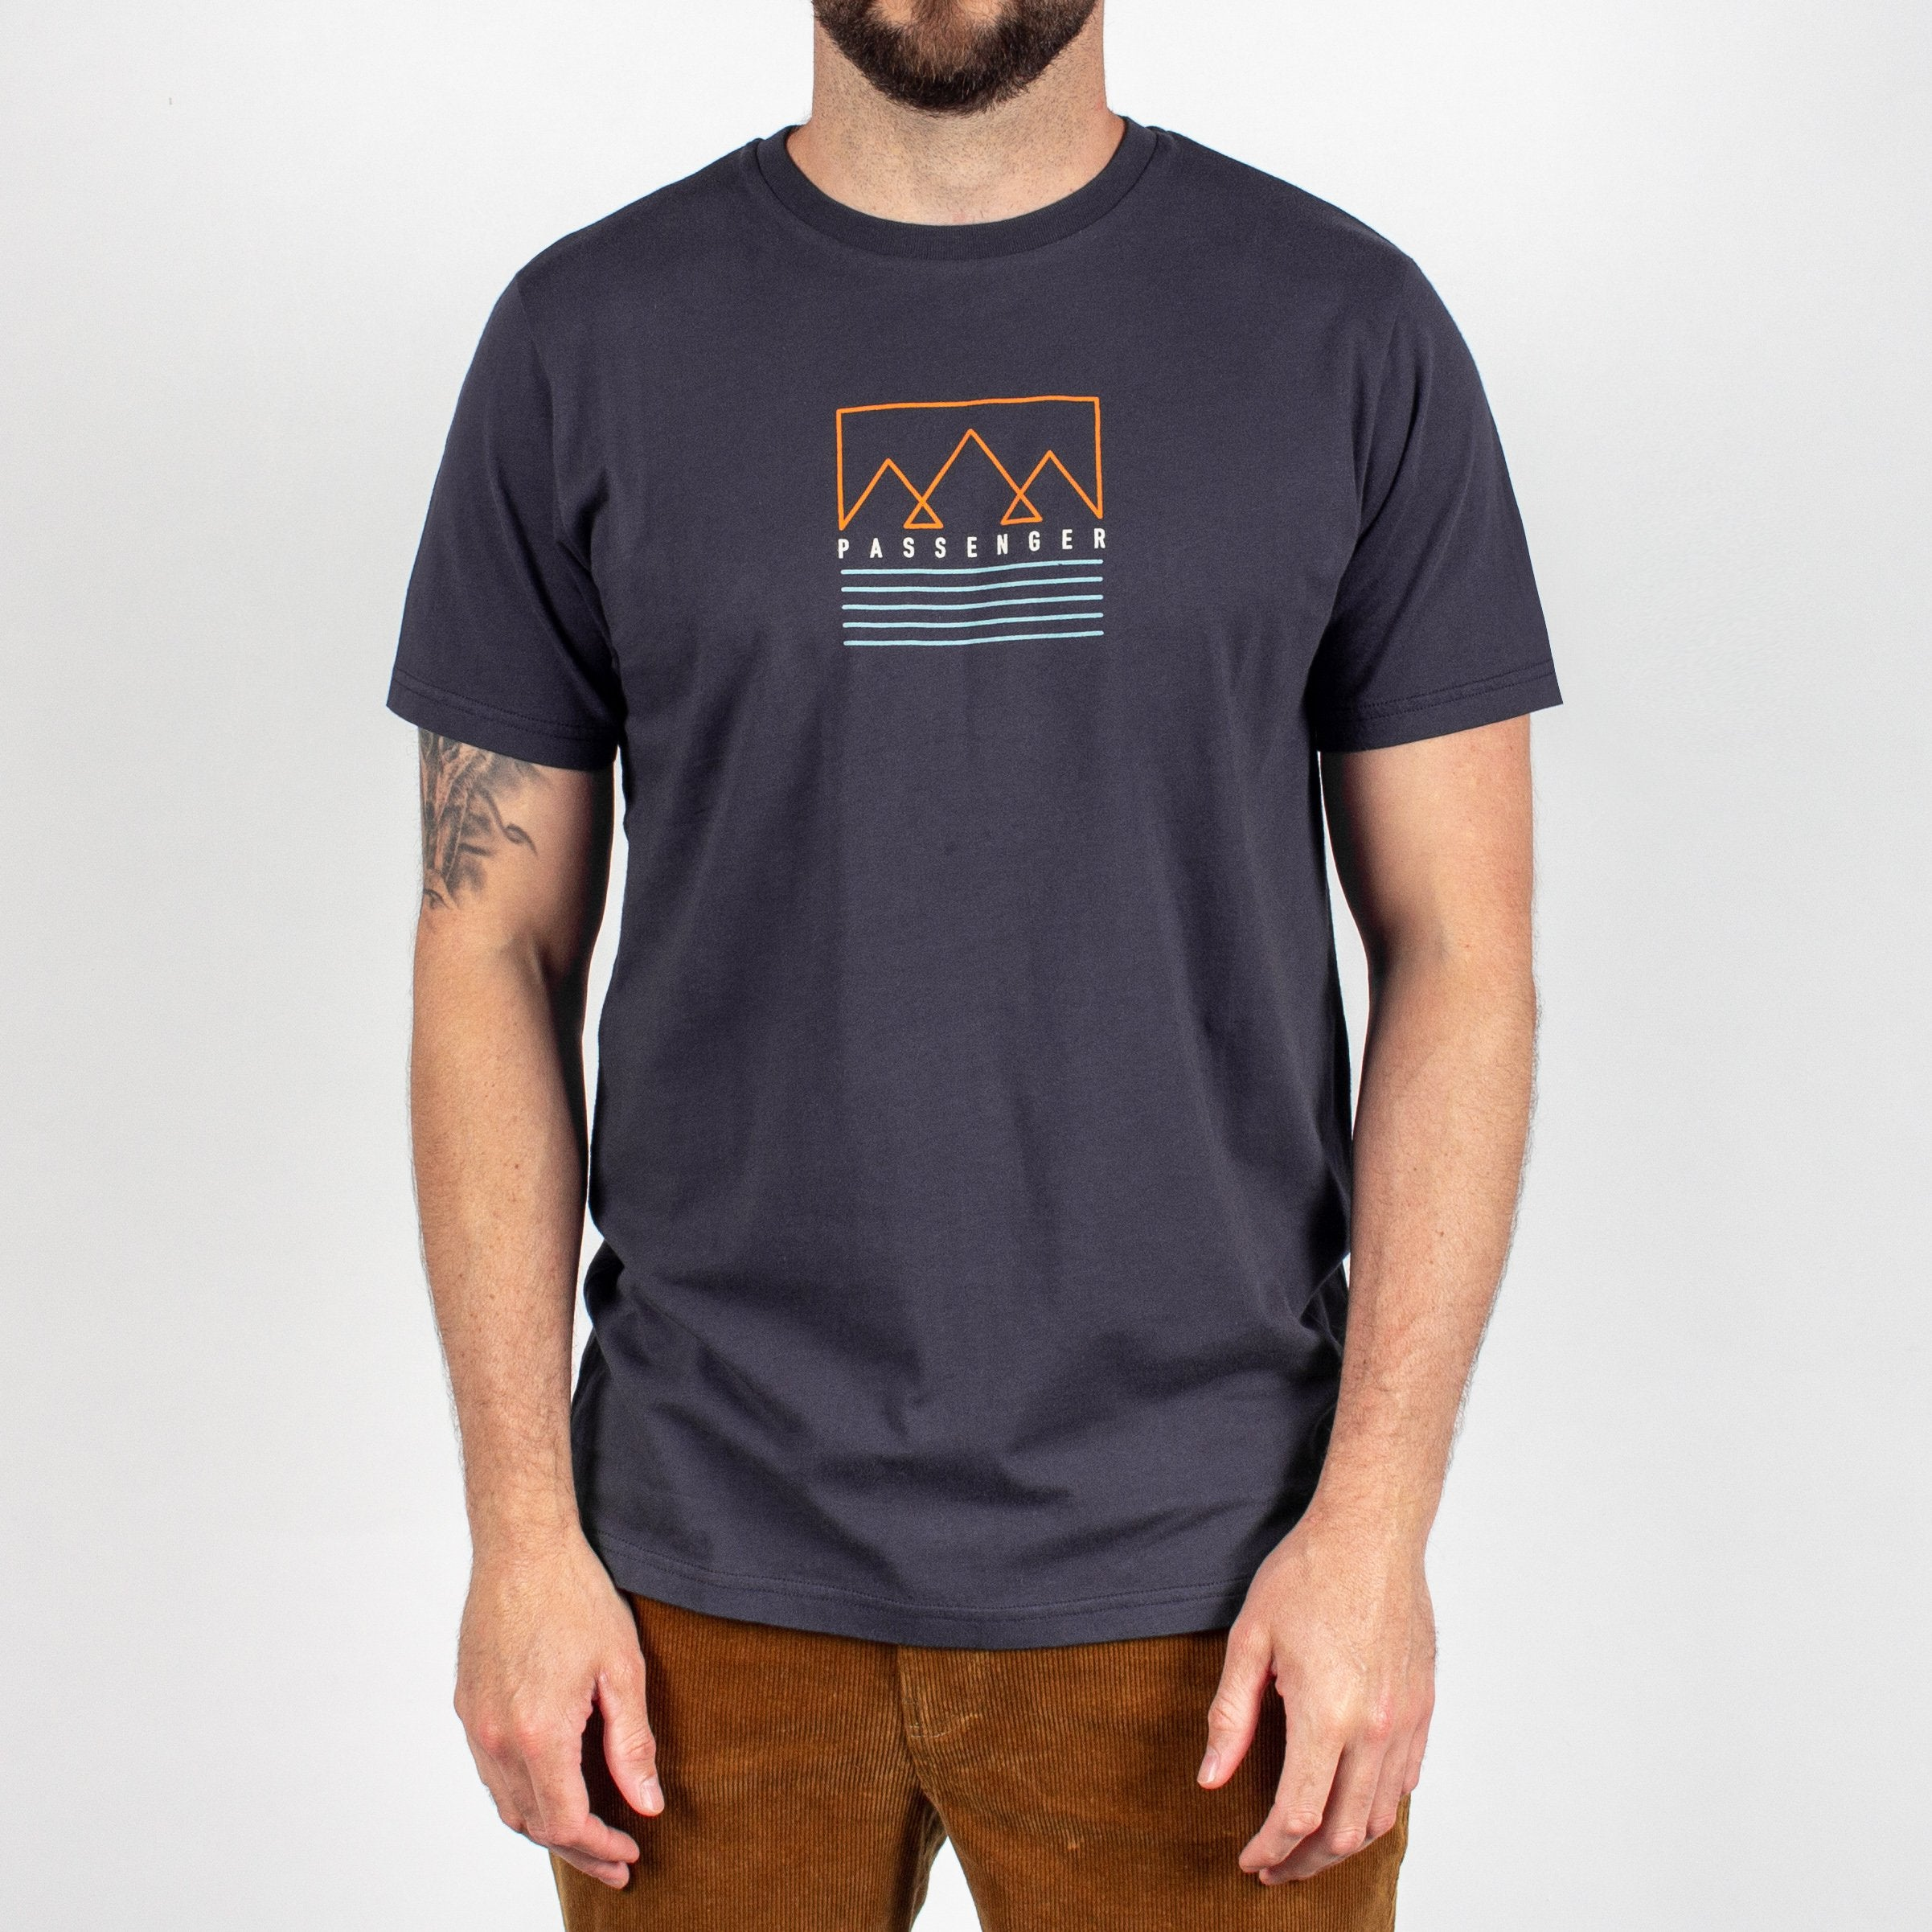 Strider T-Shirt - Blue Nights Navy image 3